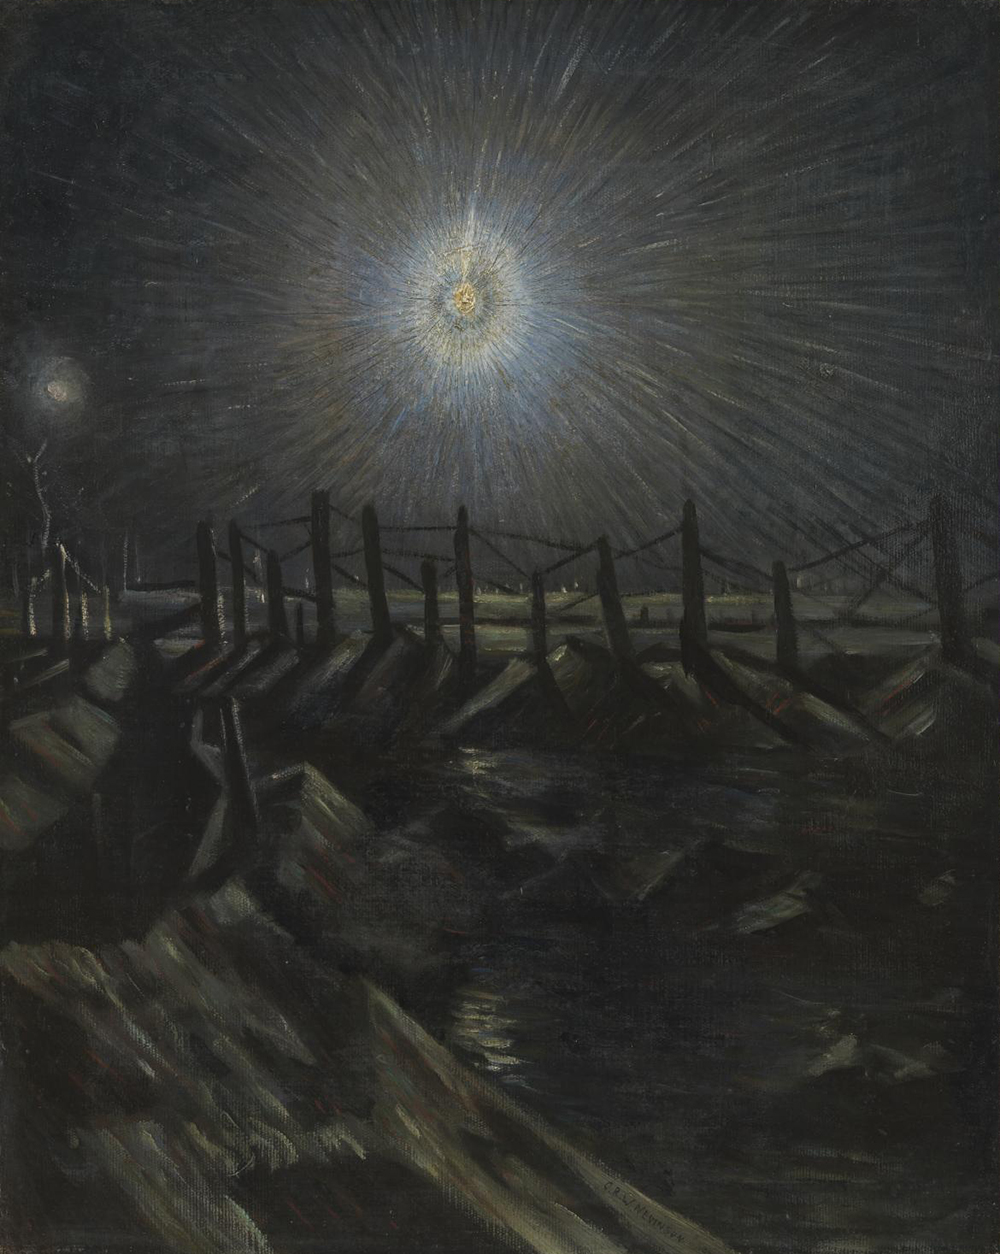 A Star Shell, by Christopher Richard Wynne Nevinson, 1916. Photograph © Tate (CC-BY-NC-ND 3.0).